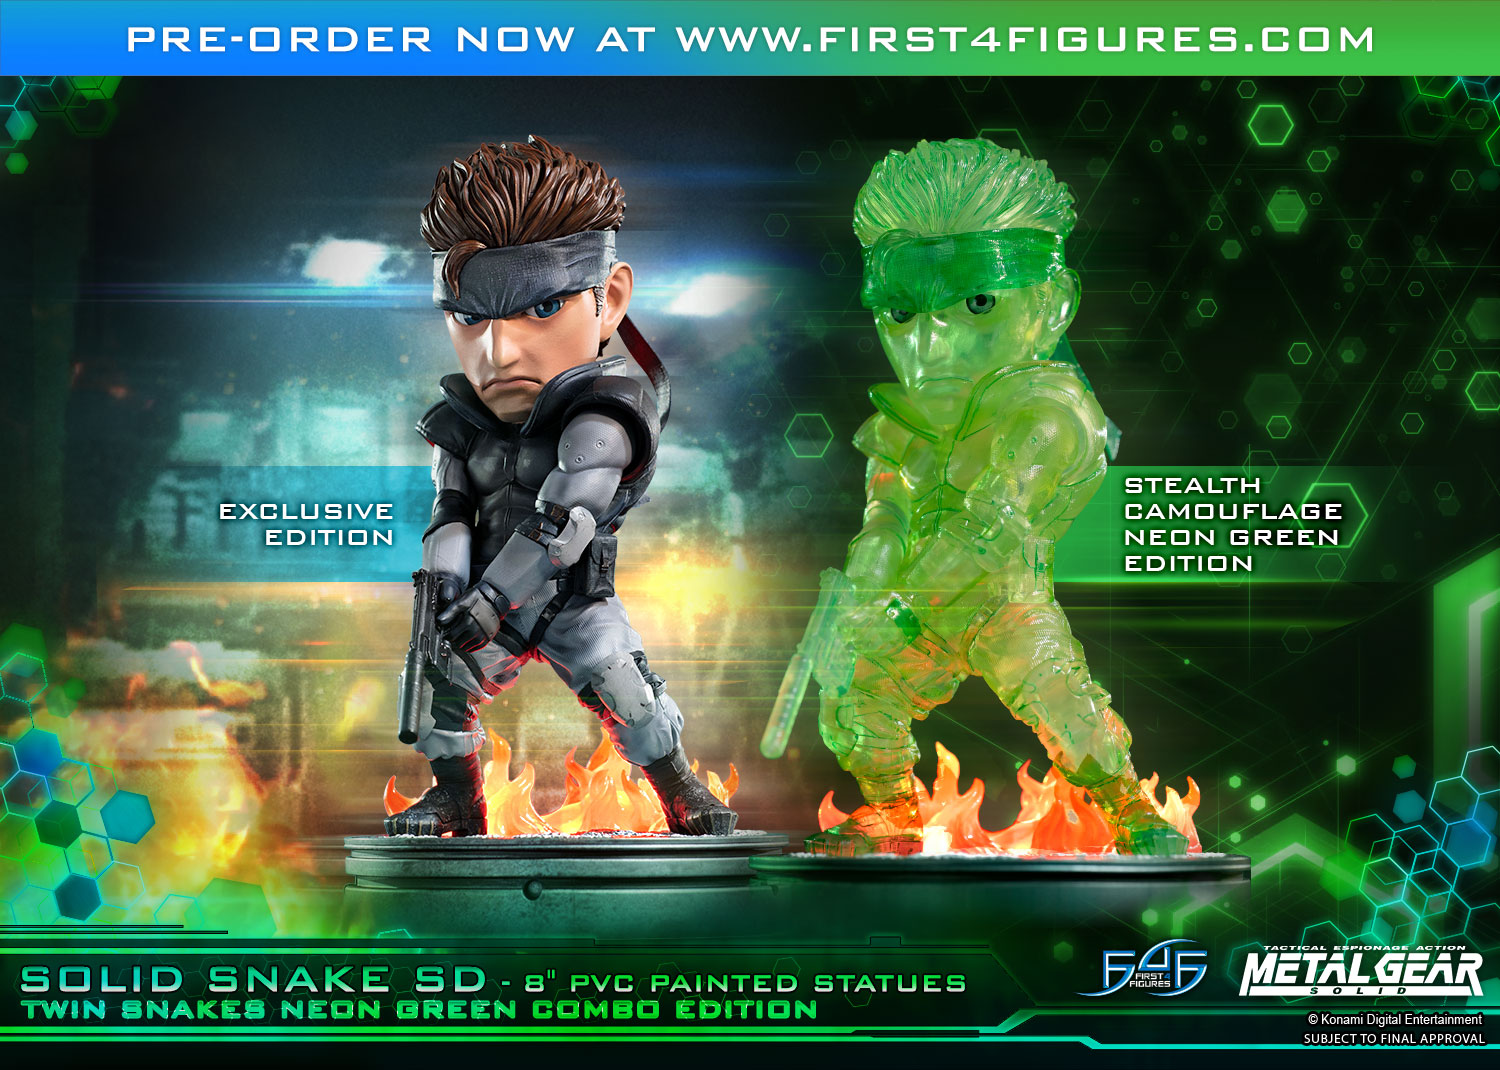 Solid Snake SD (Twin Snakes Neon Green Combo Edition)